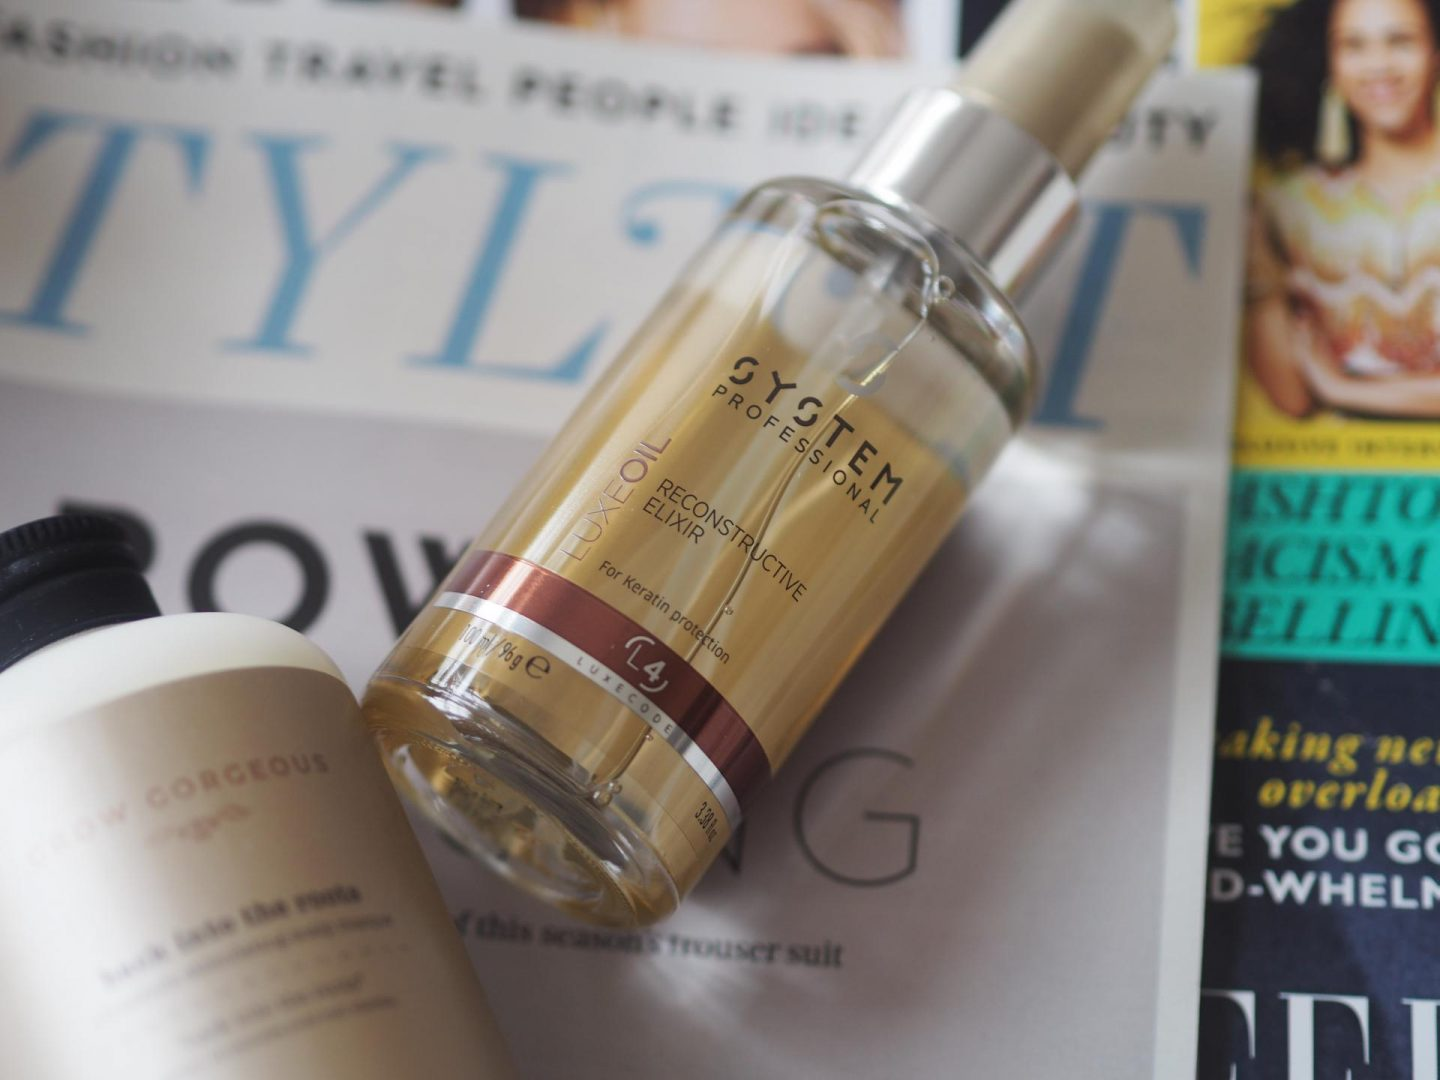 System Professional Luxe Oil Reconstructive Elixir